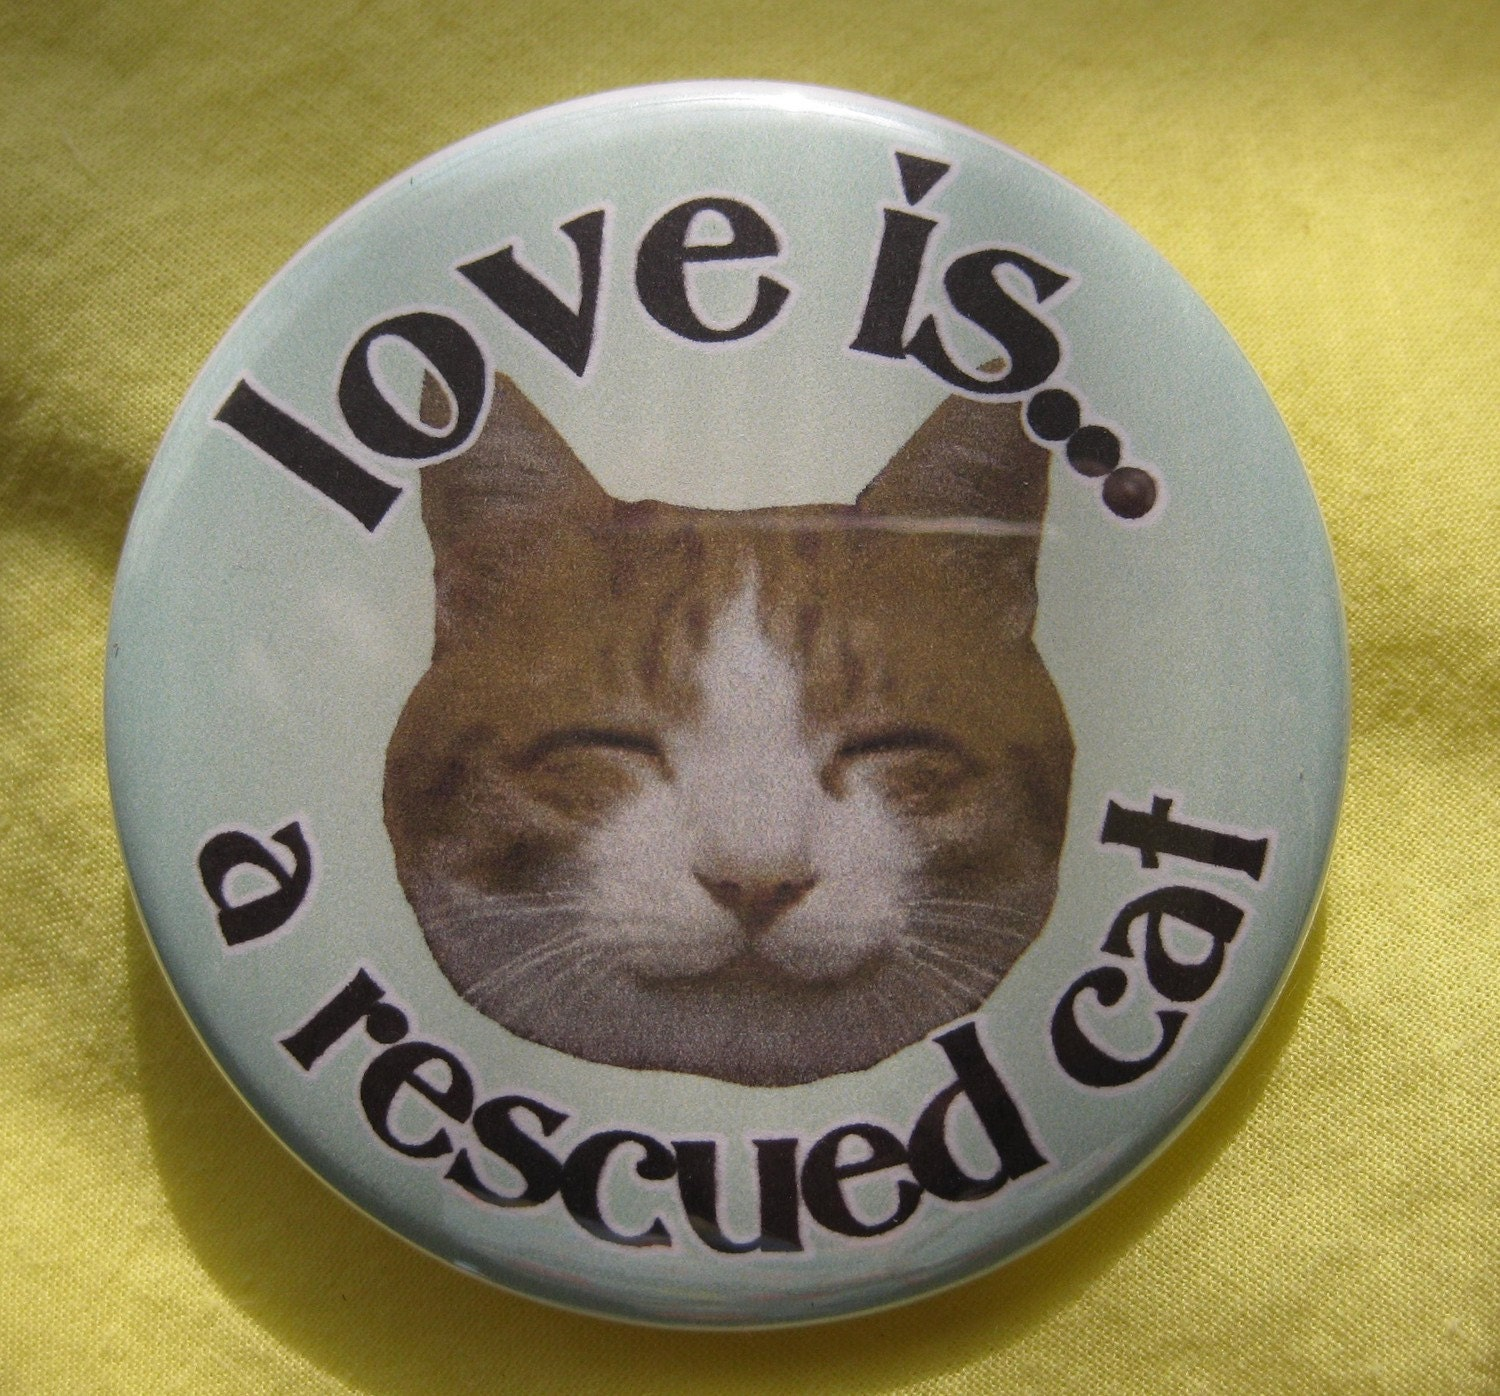 love is ... a rescued cat .... orange tabby ... badge